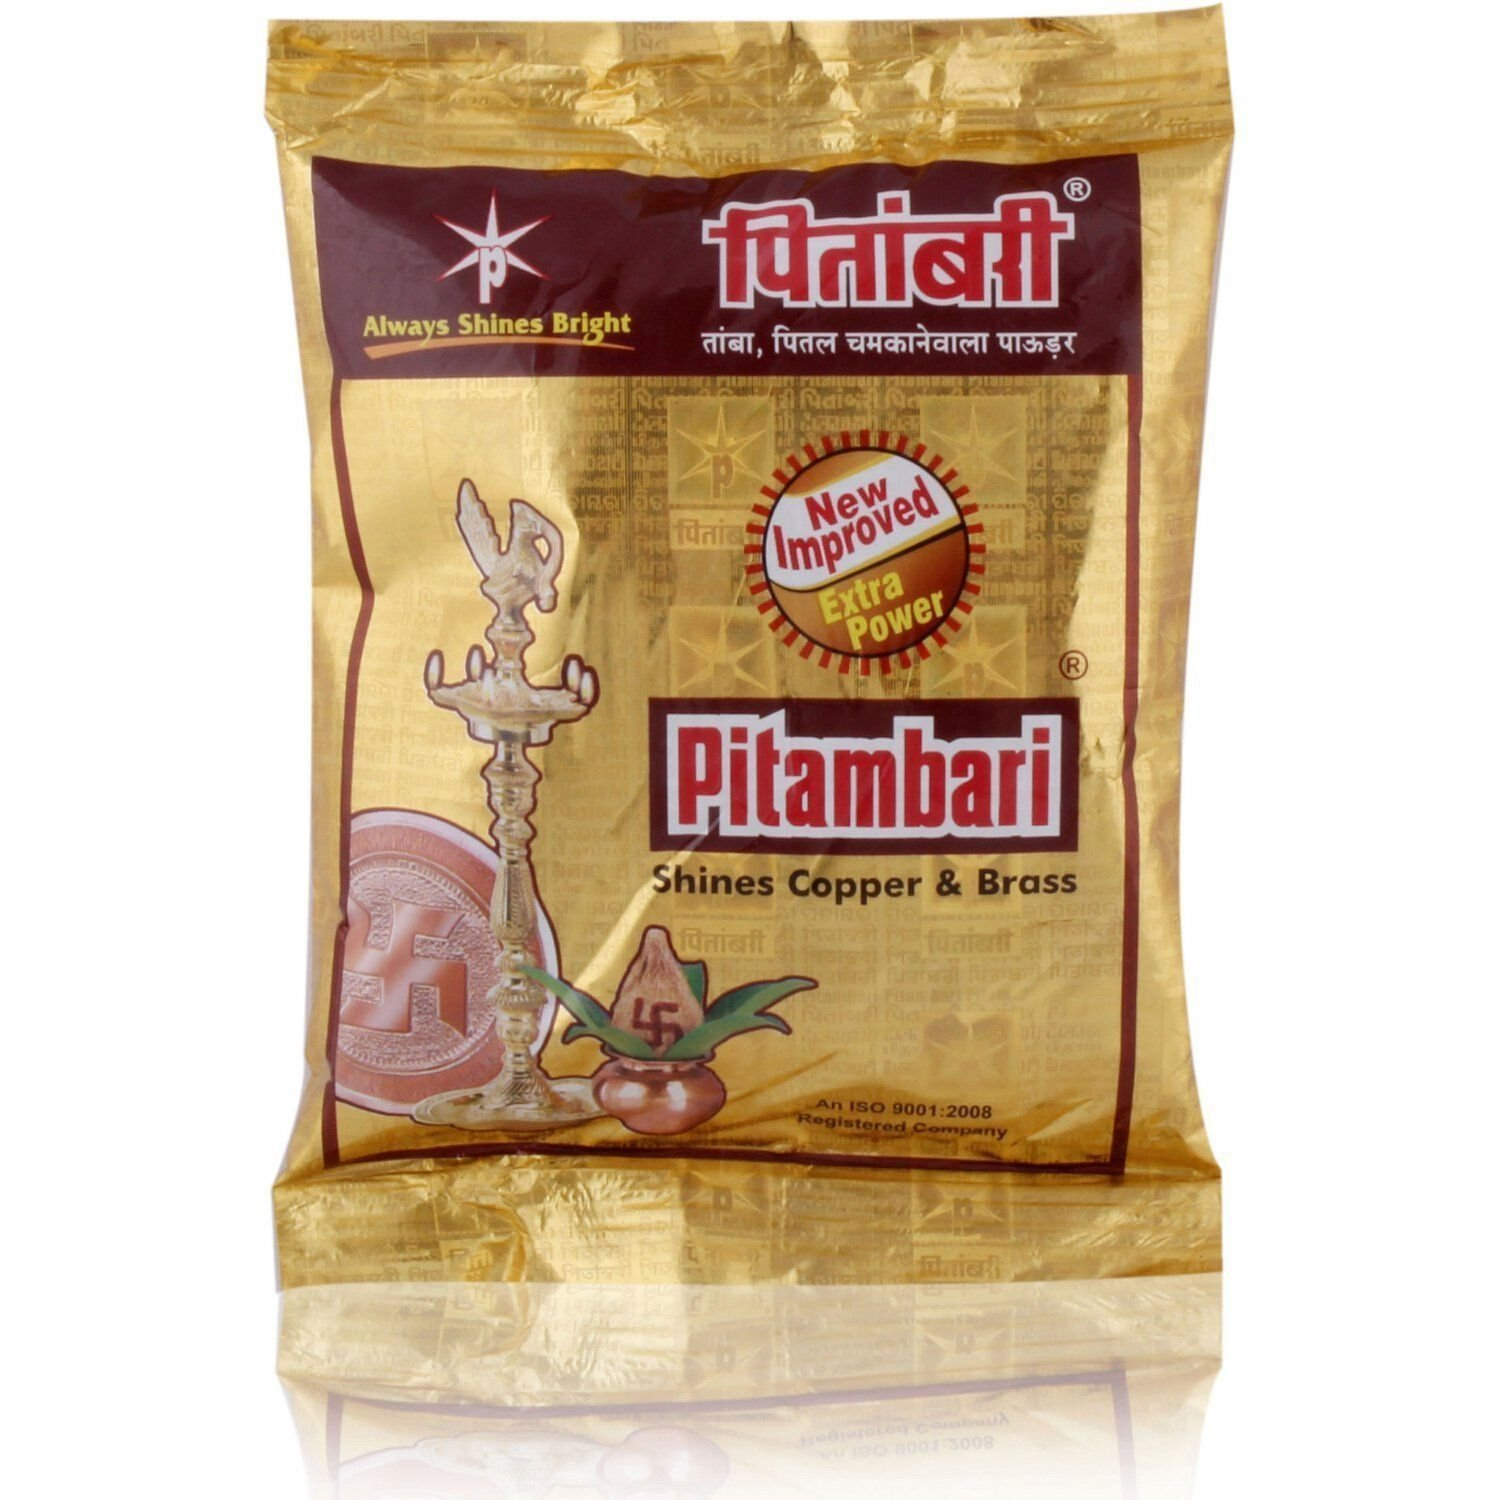 Pitambari Brass Copper Instant Cleaner/Polish Anti-Tarnish Powder 200 gm /For Cleaning and Polishing Pots, Sinks, Mugs, Hardware, Pans and More